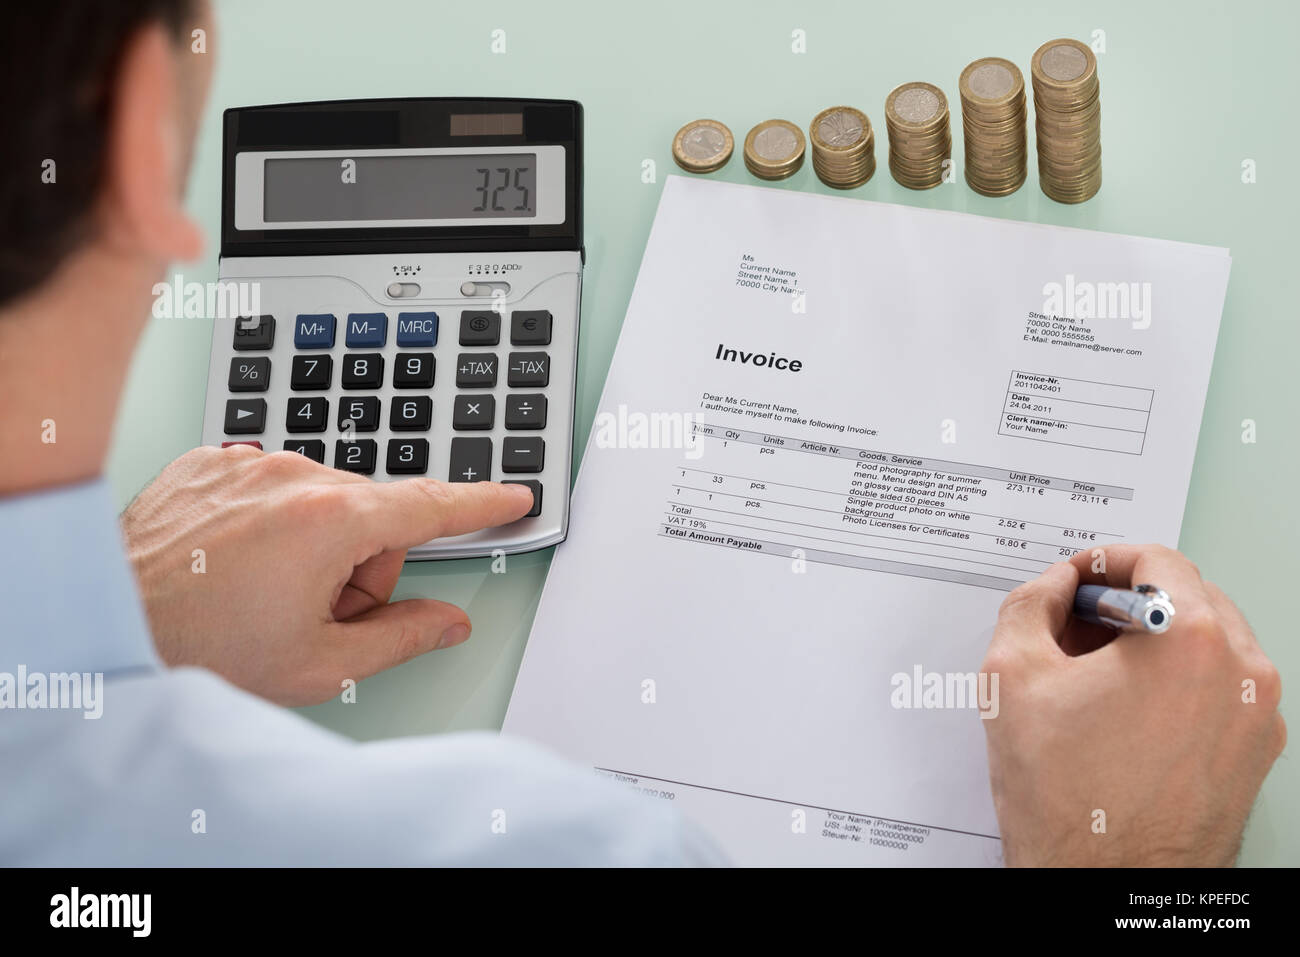 Businessperson Calculating Invoice With Coins At Desk Stock Photo